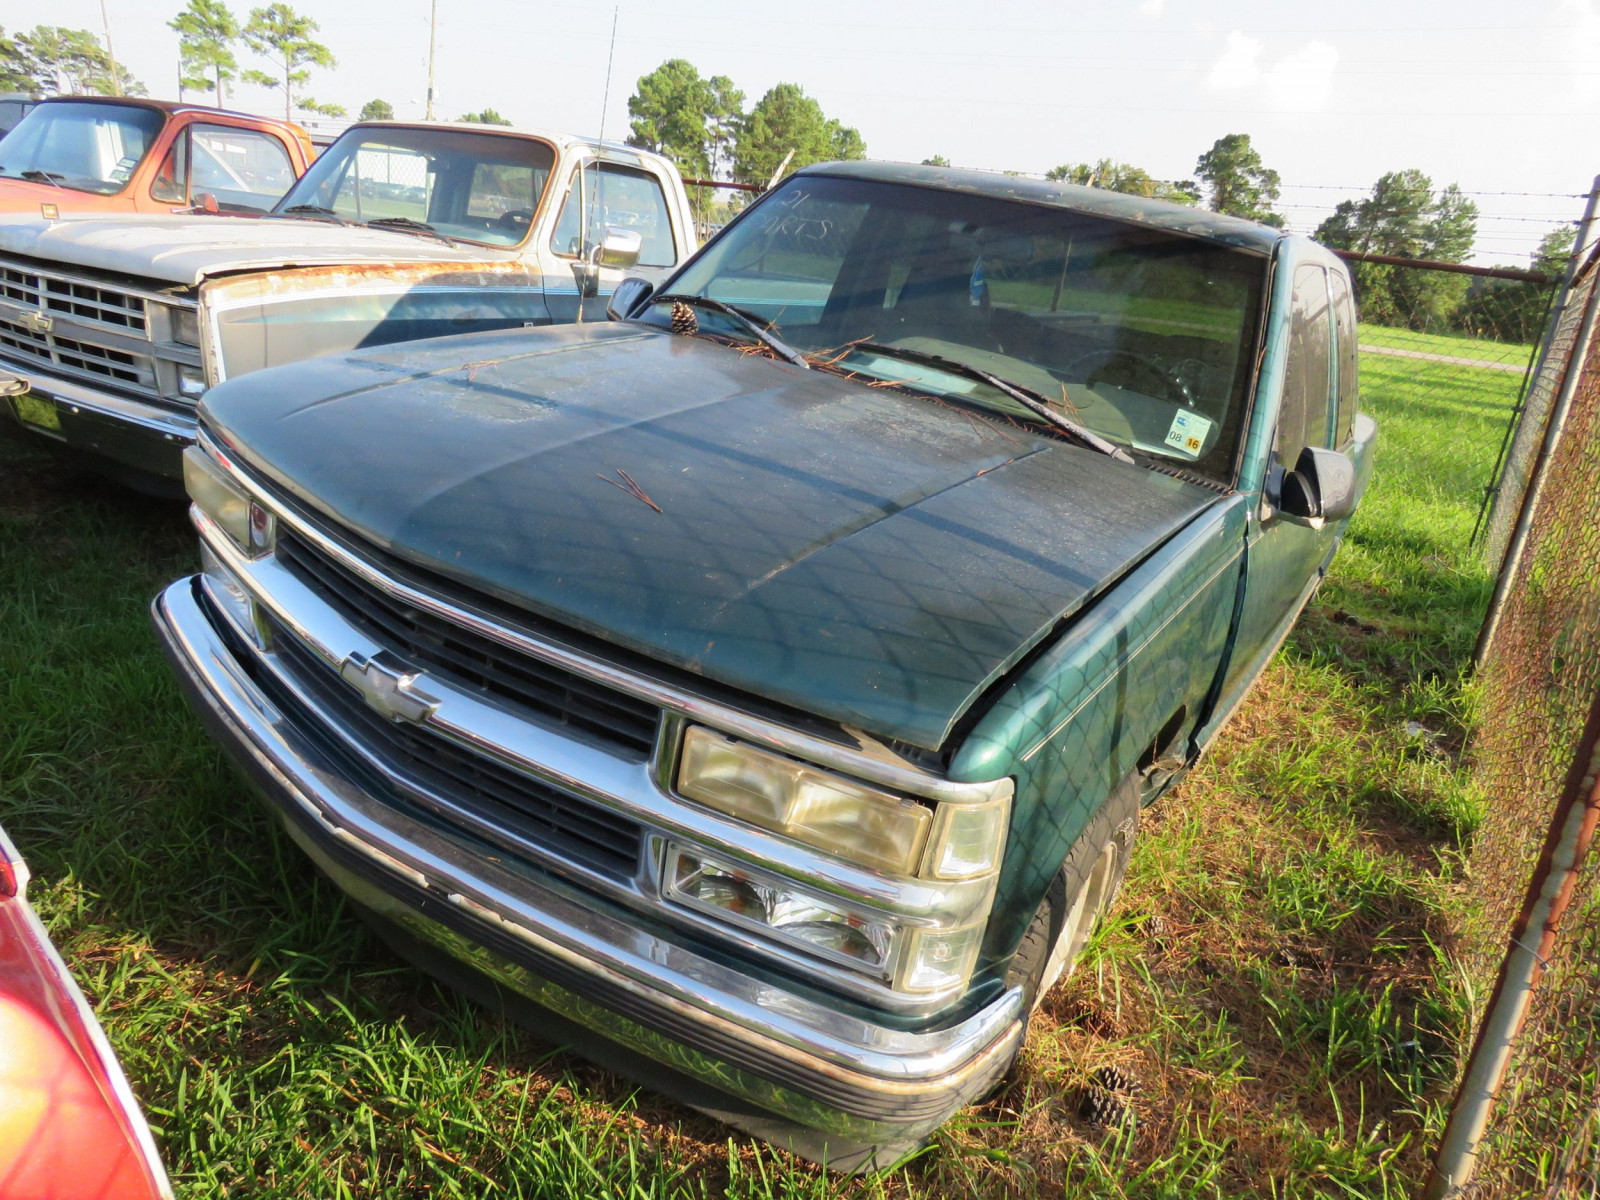 1995 Chevrolet Stepside Pickup - Image 2